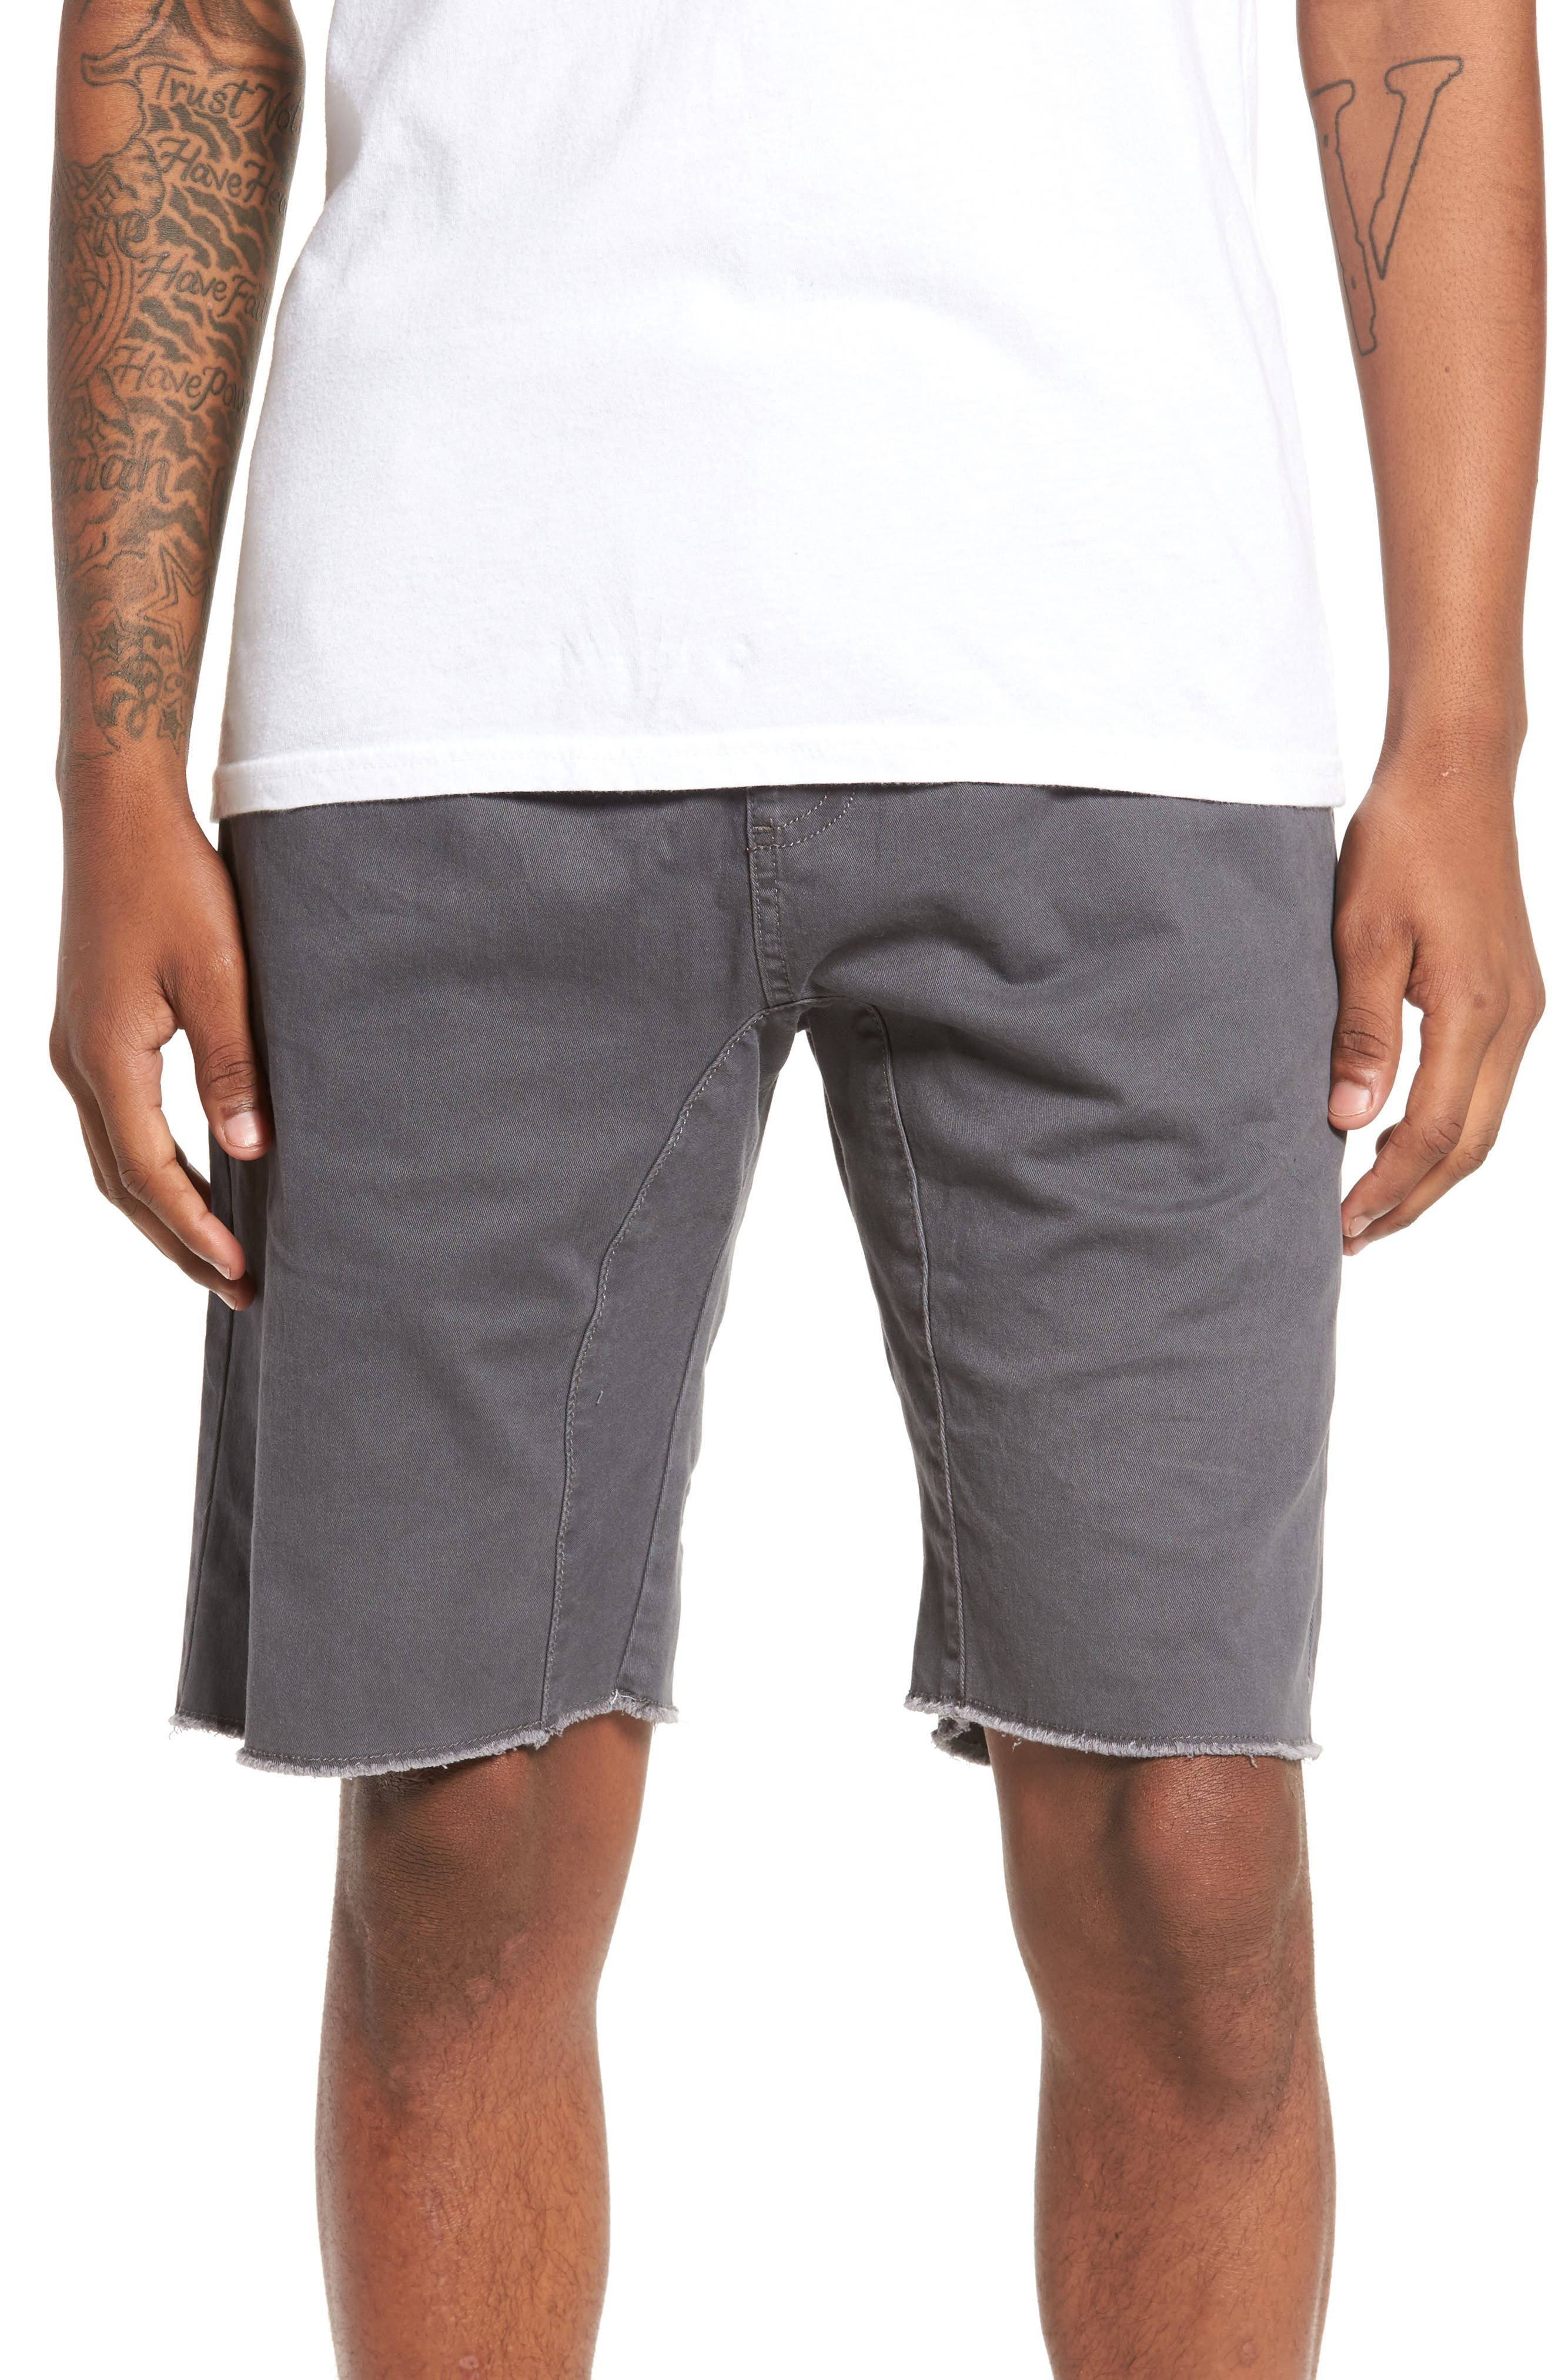 Jogger Shorts,                             Main thumbnail 1, color,                             022